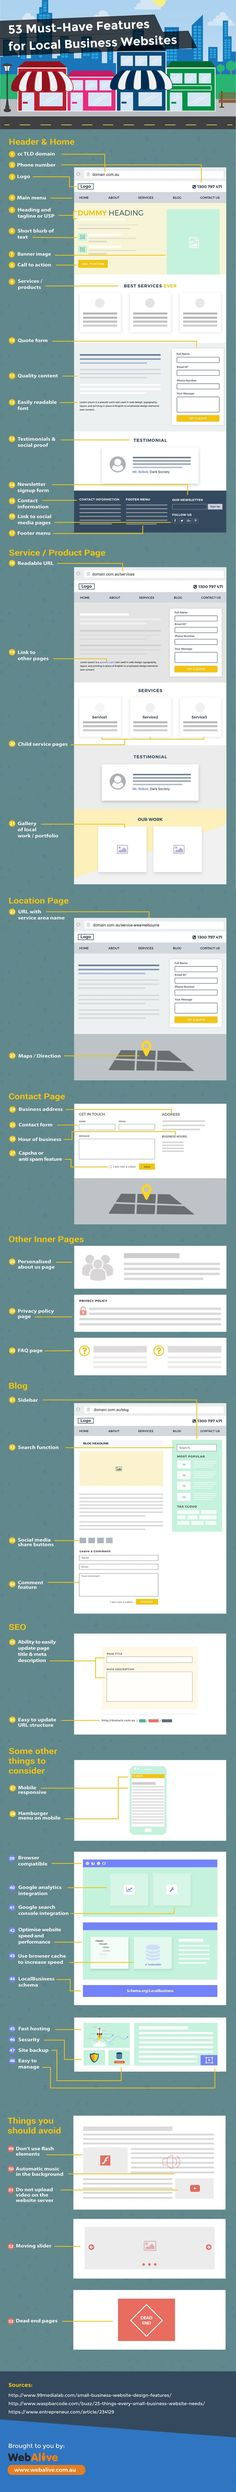 53 Essential Features of Every Good Local Business Website Infographic – Business marketing design Marketing En Internet, Marketing Online, Inbound Marketing, Marketing Digital, Business Marketing, Content Marketing, Marketing Automation, Infographic Website, Web Responsive